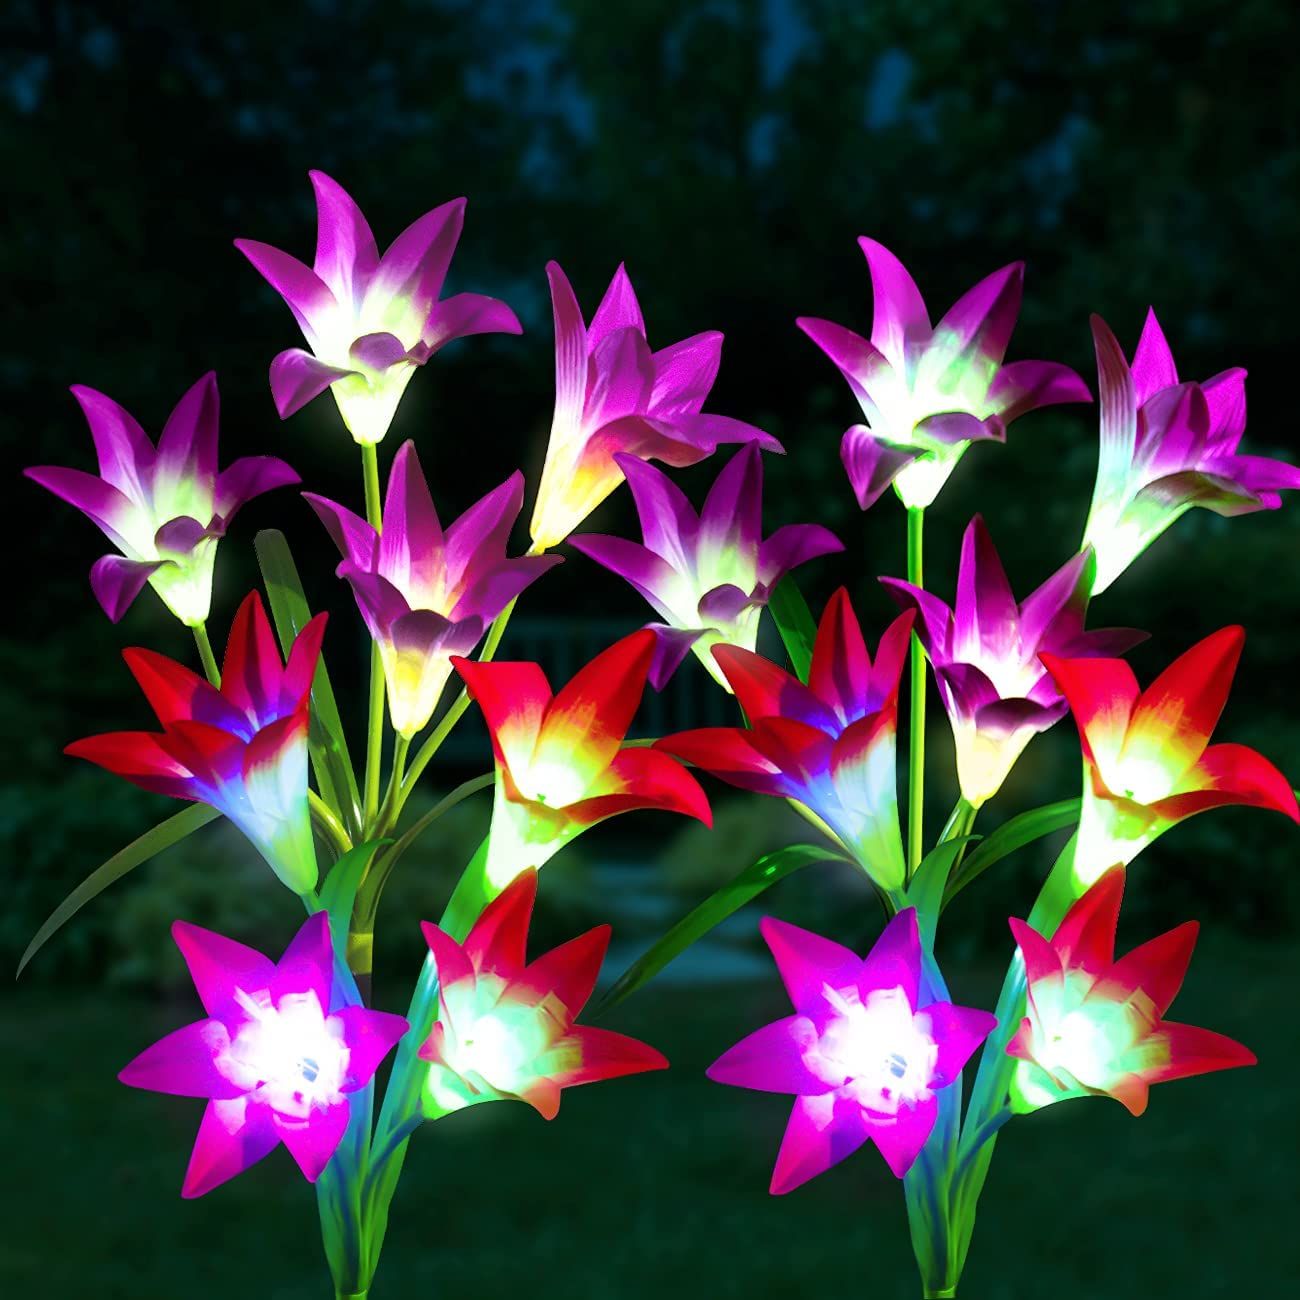 Solar Garden Lights Outdoor Decorative, 4 Pack Solar Flower Lights with 16 Bigger Lily Flower, 7 Colors Changing Outdoor Waterproof Solar LED Flower Light for Garden, Patio,Yard Decoration